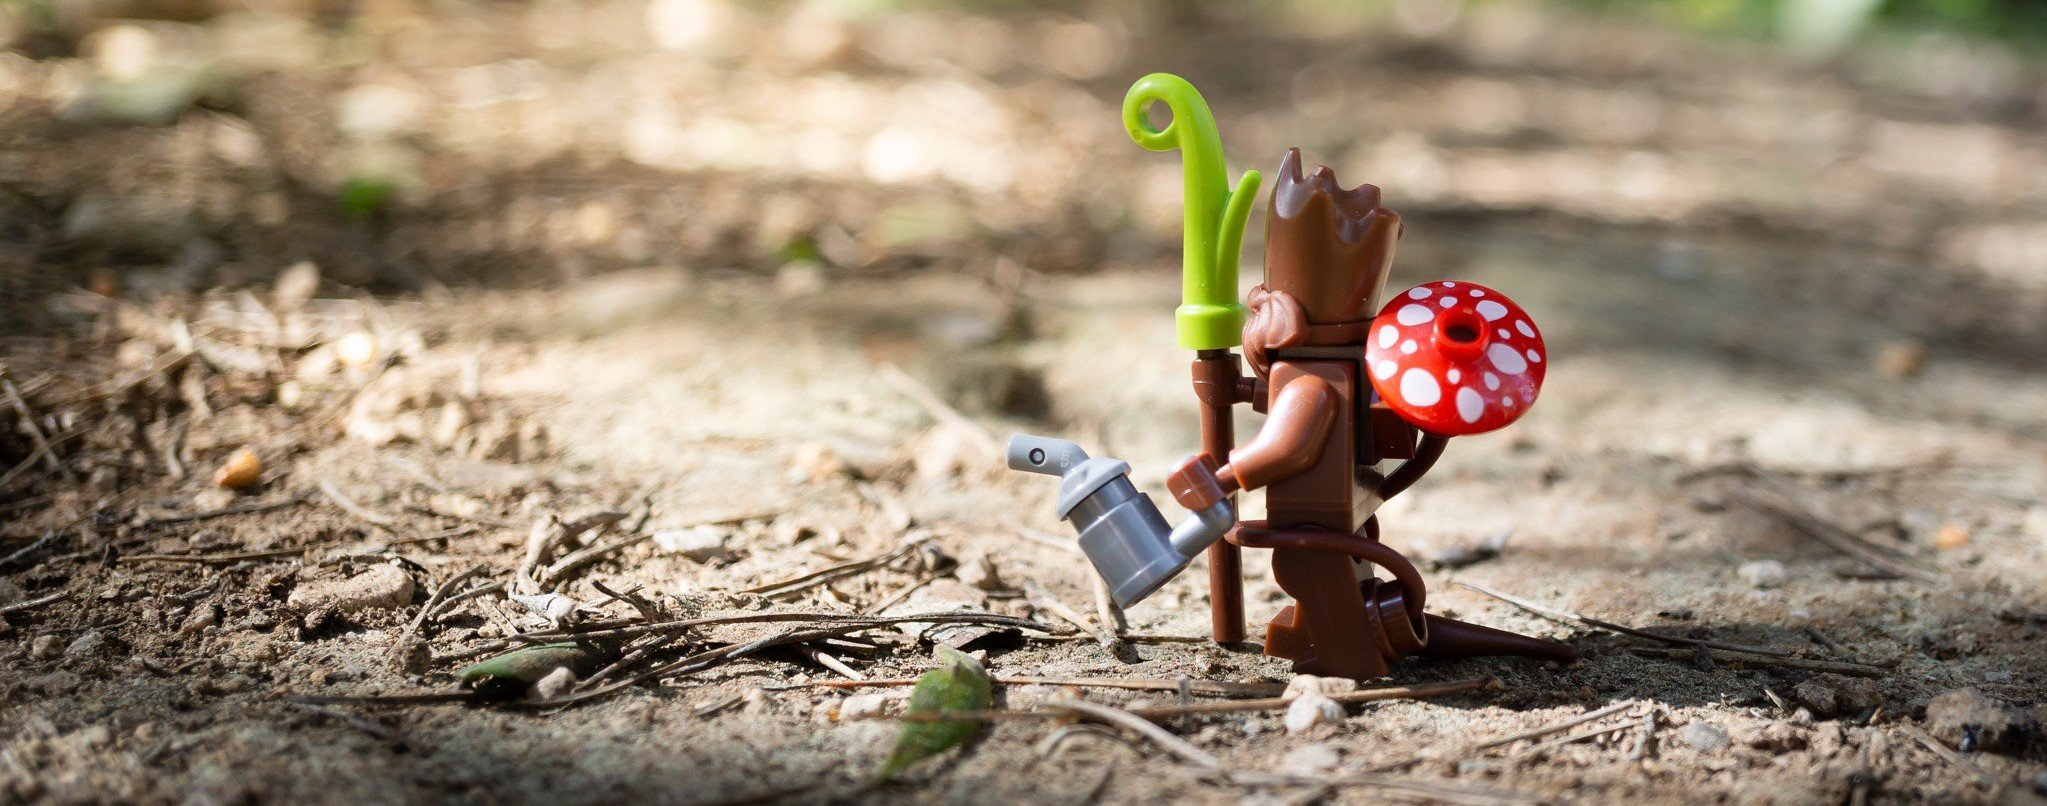 This photo shows a LEGO going on a walk